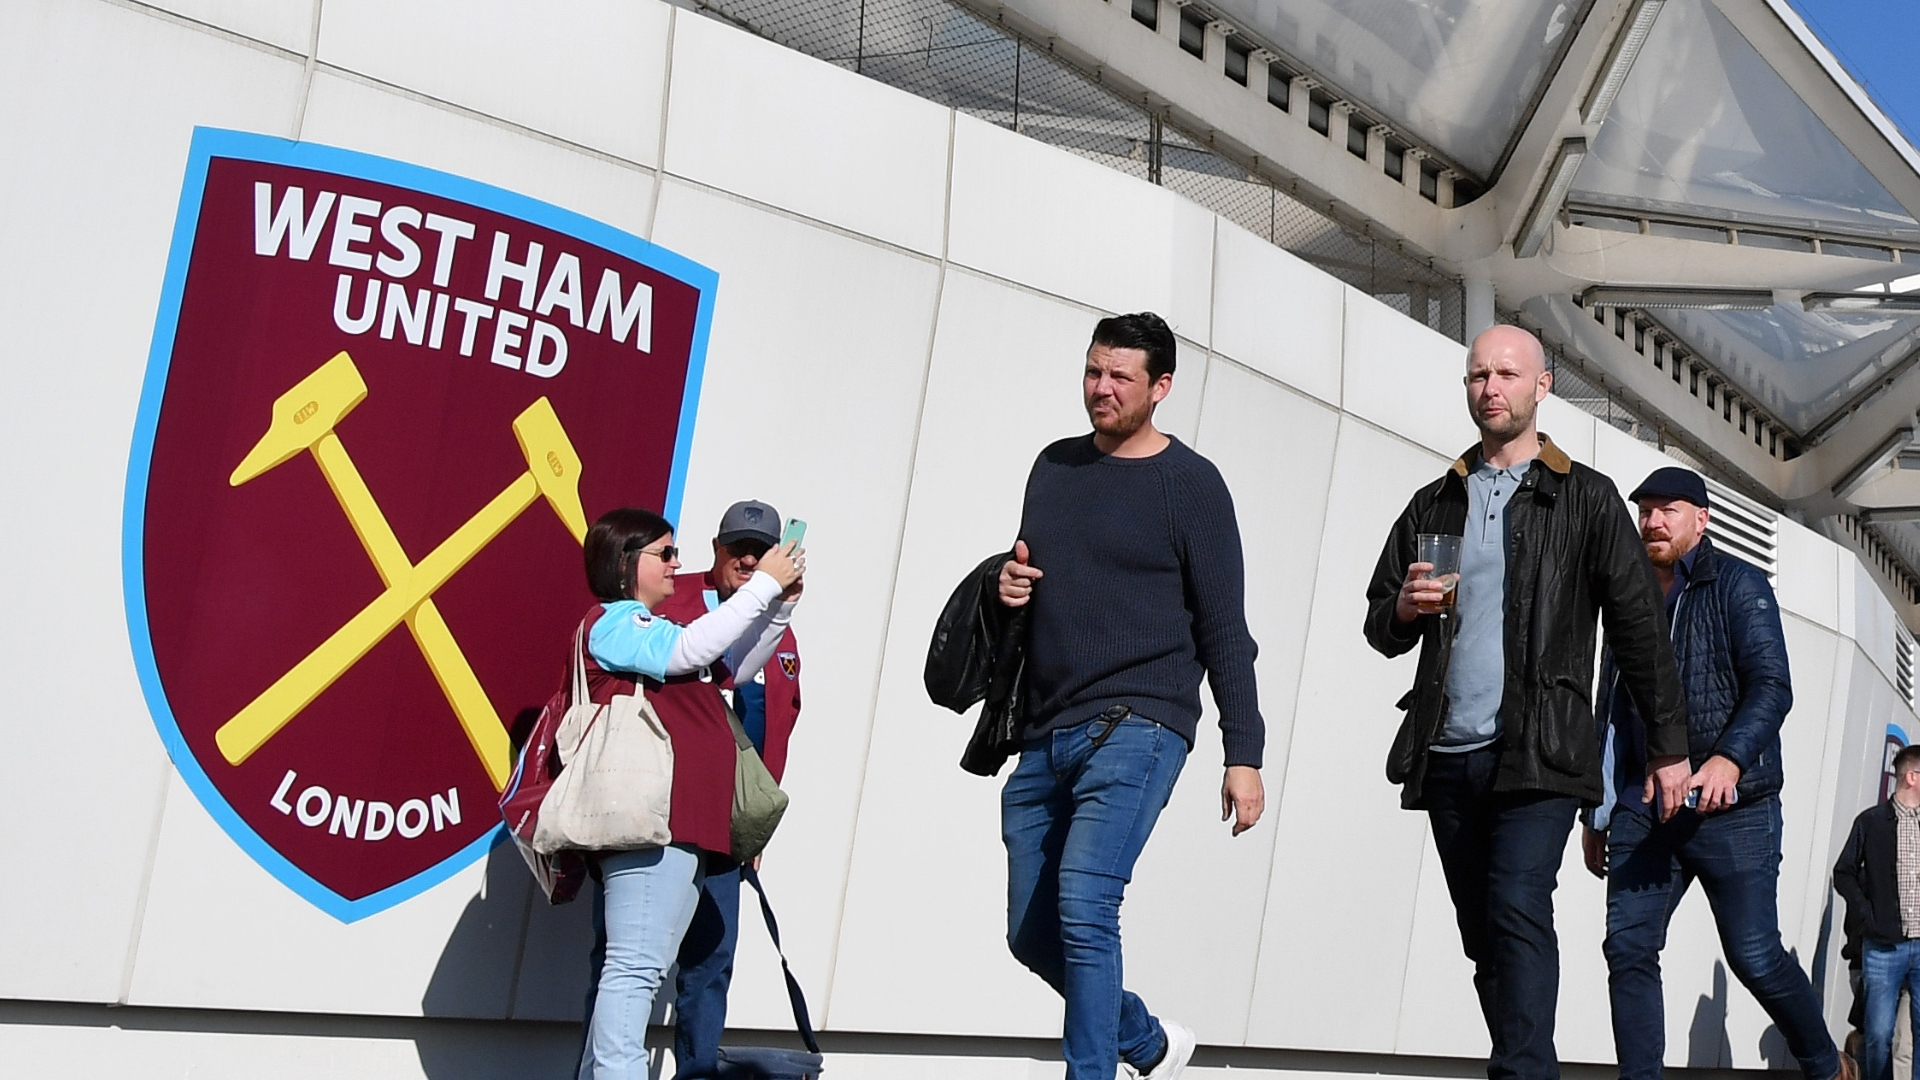 Coronavirus: Premier League clubs set to welcome fans as restrictions eased